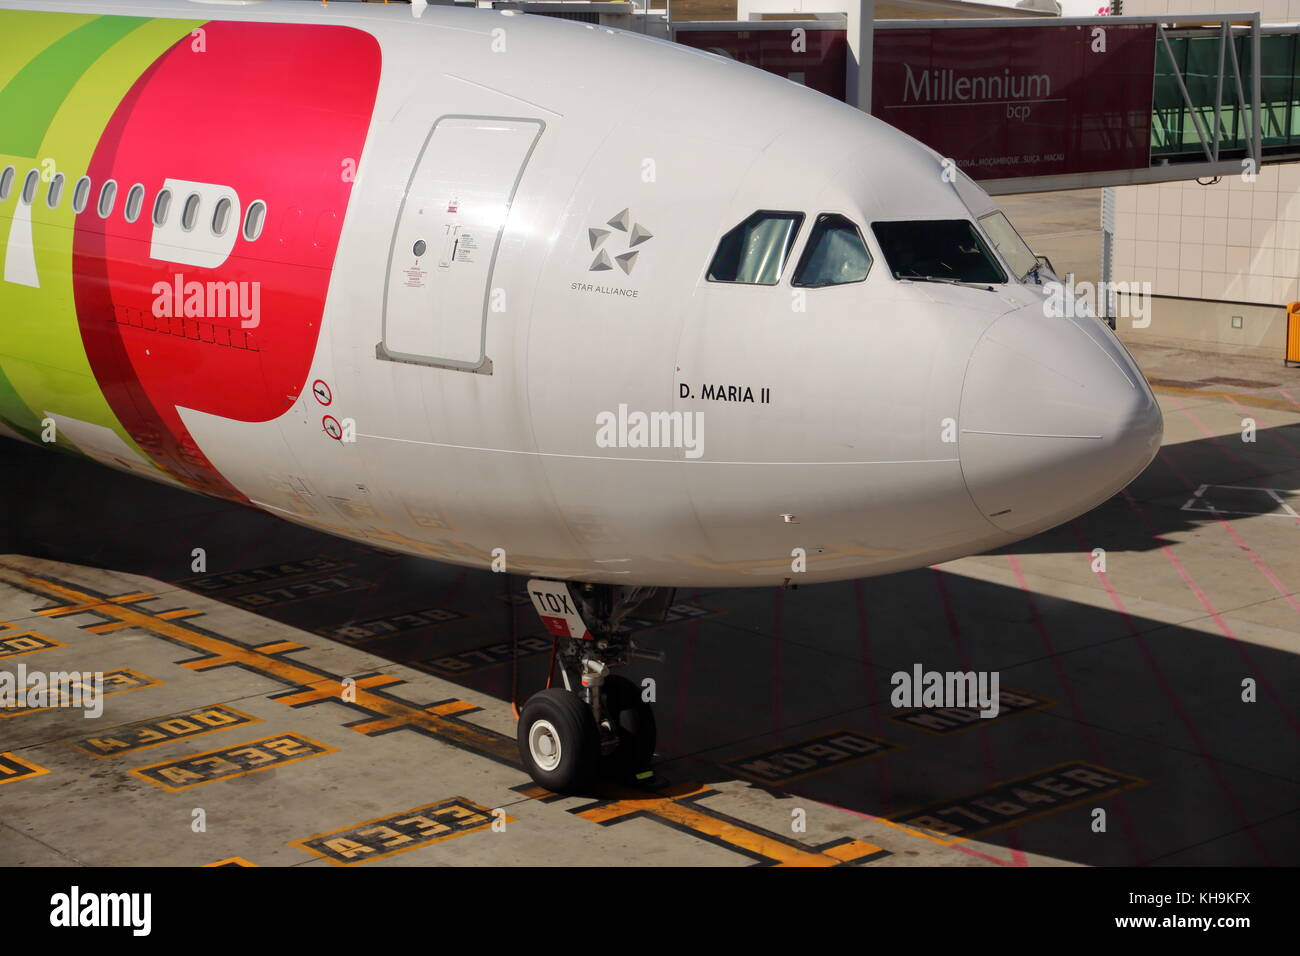 A TAP Airbus A330 CS-TOX passenger plane at the gate at Lisbon Airport, Portugal - Stock Image